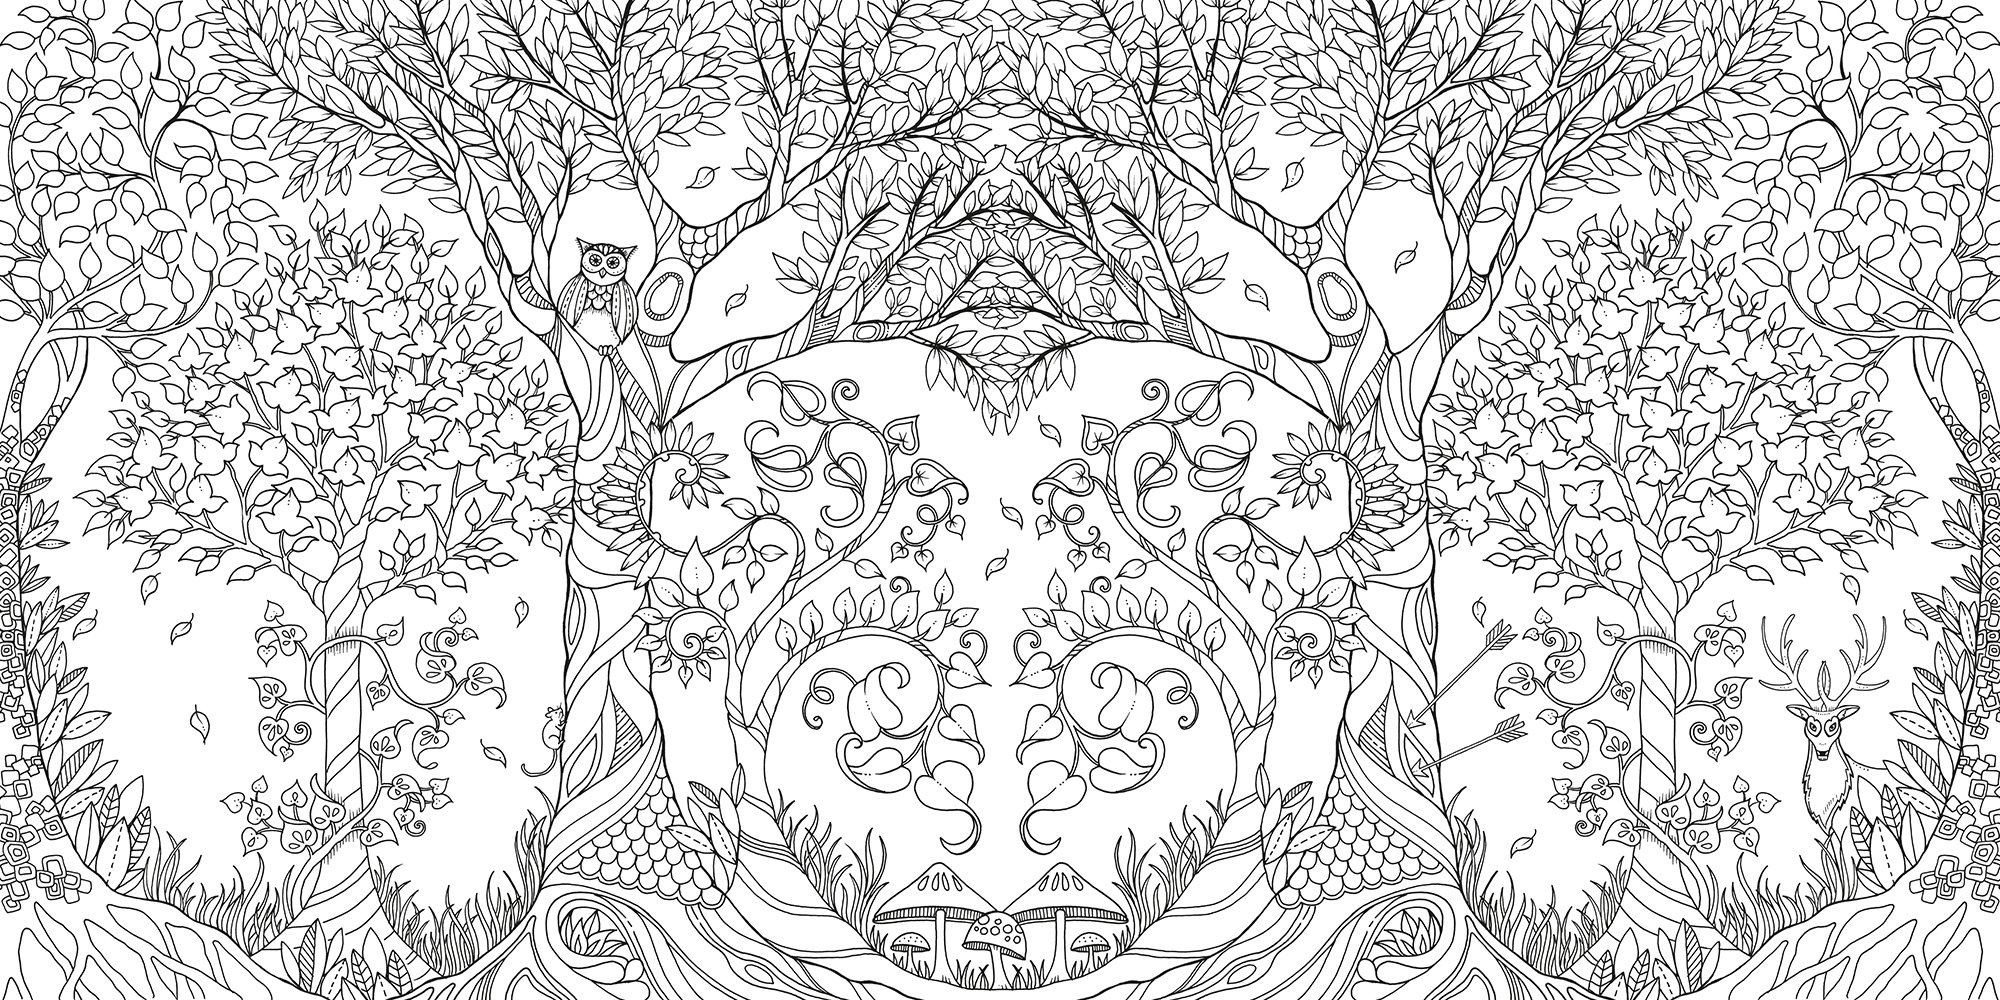 coloring books for adults - Coloring Books